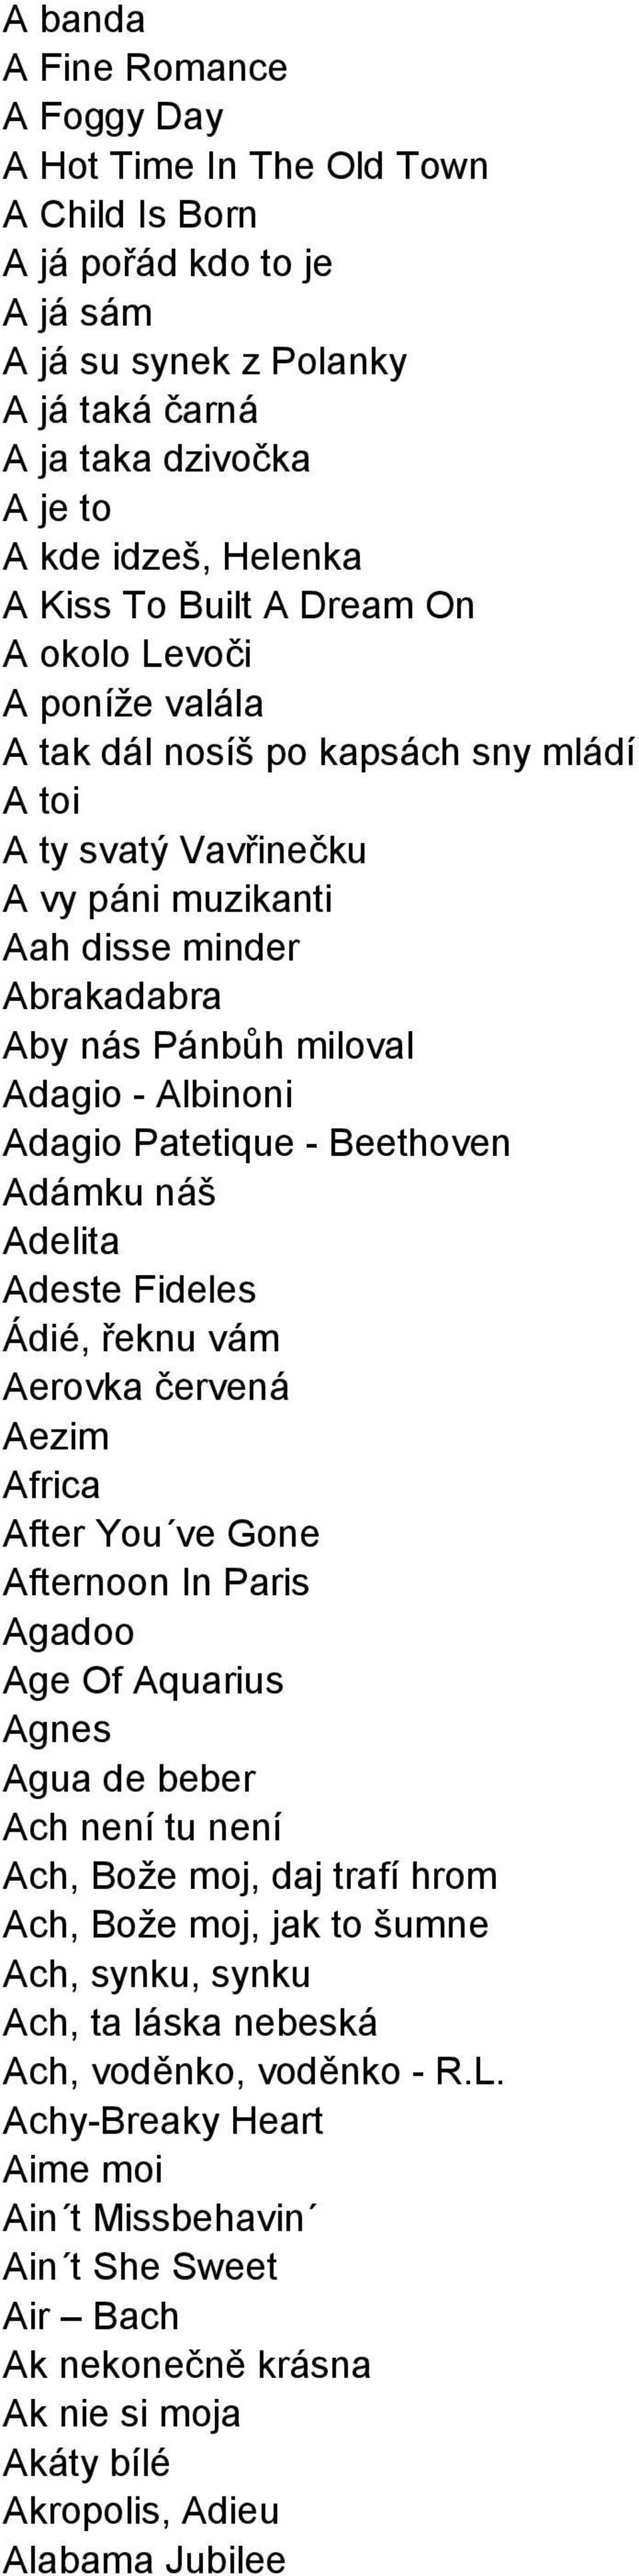 - Albinoni Adagio Patetique - Beethoven Adámku náš Adelita Adeste Fideles Ádié, řeknu vám Aerovka červená Aezim Africa After You ve Gone Afternoon In Paris Agadoo Age Of Aquarius Agnes Agua de beber